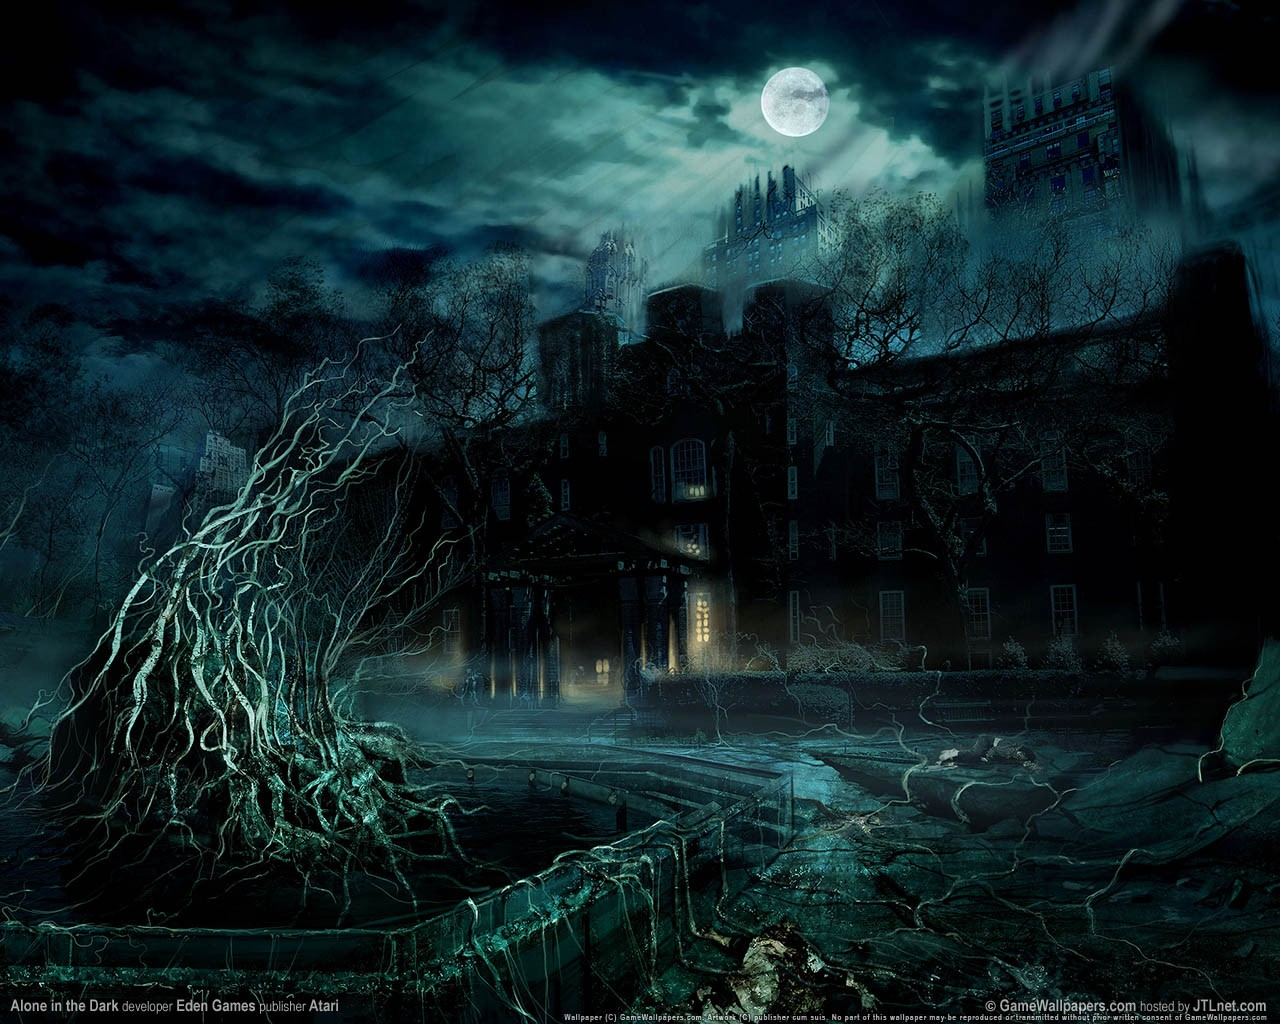 effadebb-haunted-mansion-haunted-houses-wallpaper-wpc9001711